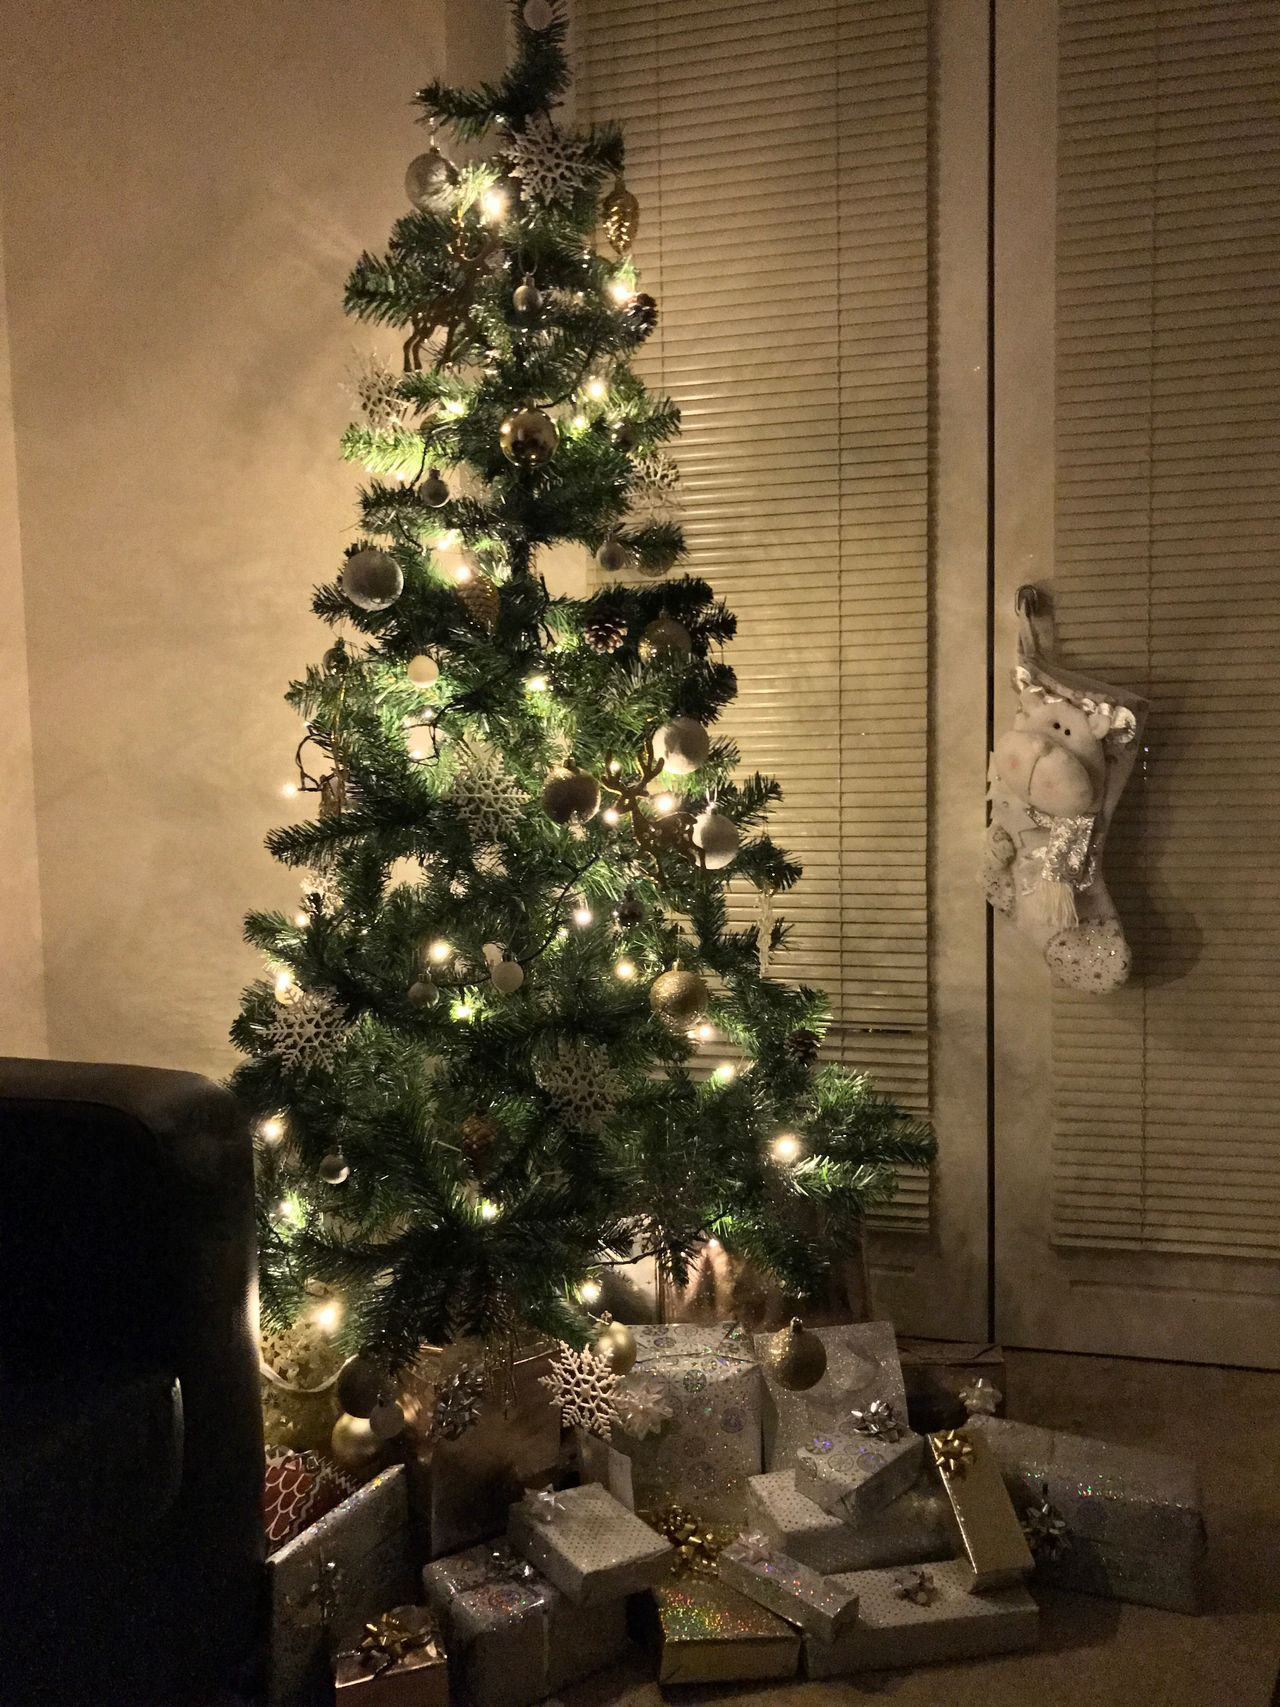 Christmas Tree Christmas Tree Christmas Decoration Home Interior Celebration Holiday - Event Indoors  Tradition Living Room No People Christmas Ornament Christmas Lights Illuminated Domestic Life Day Scotland Glasgow